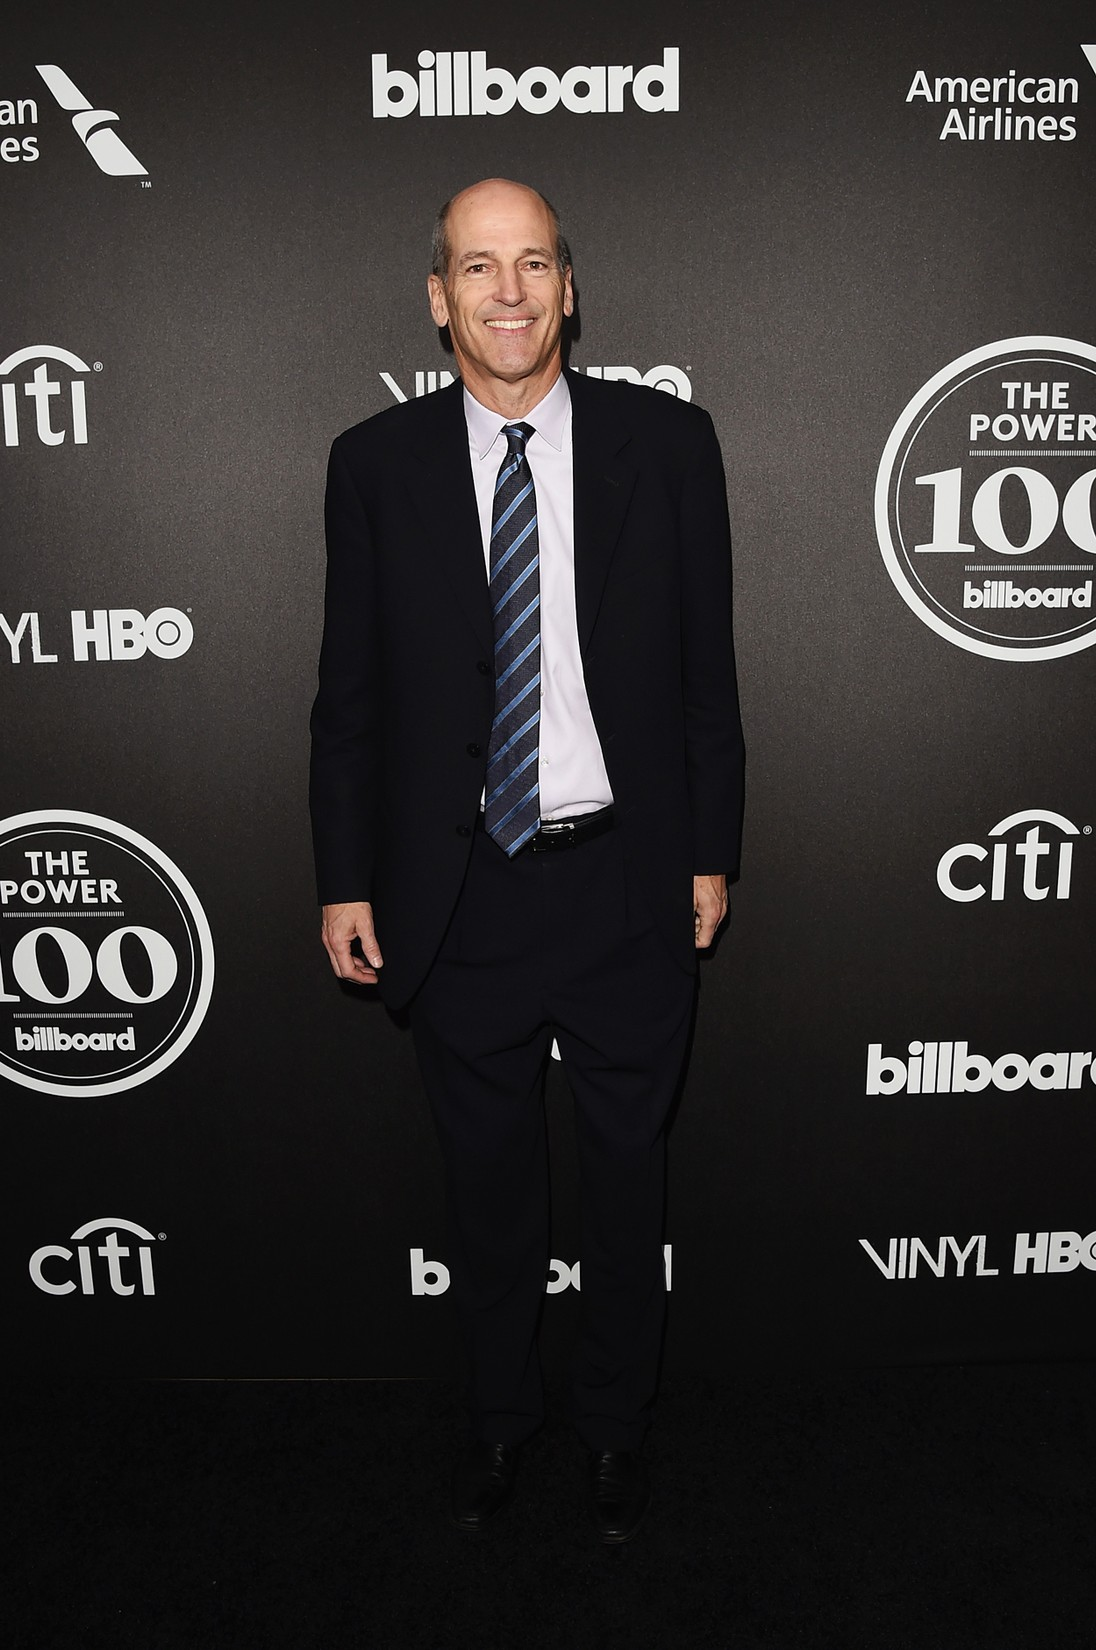 Chief Executive Officer and President of Pandora Media, Inc. Brian McAndrews attends 2016 Billboard Power 100